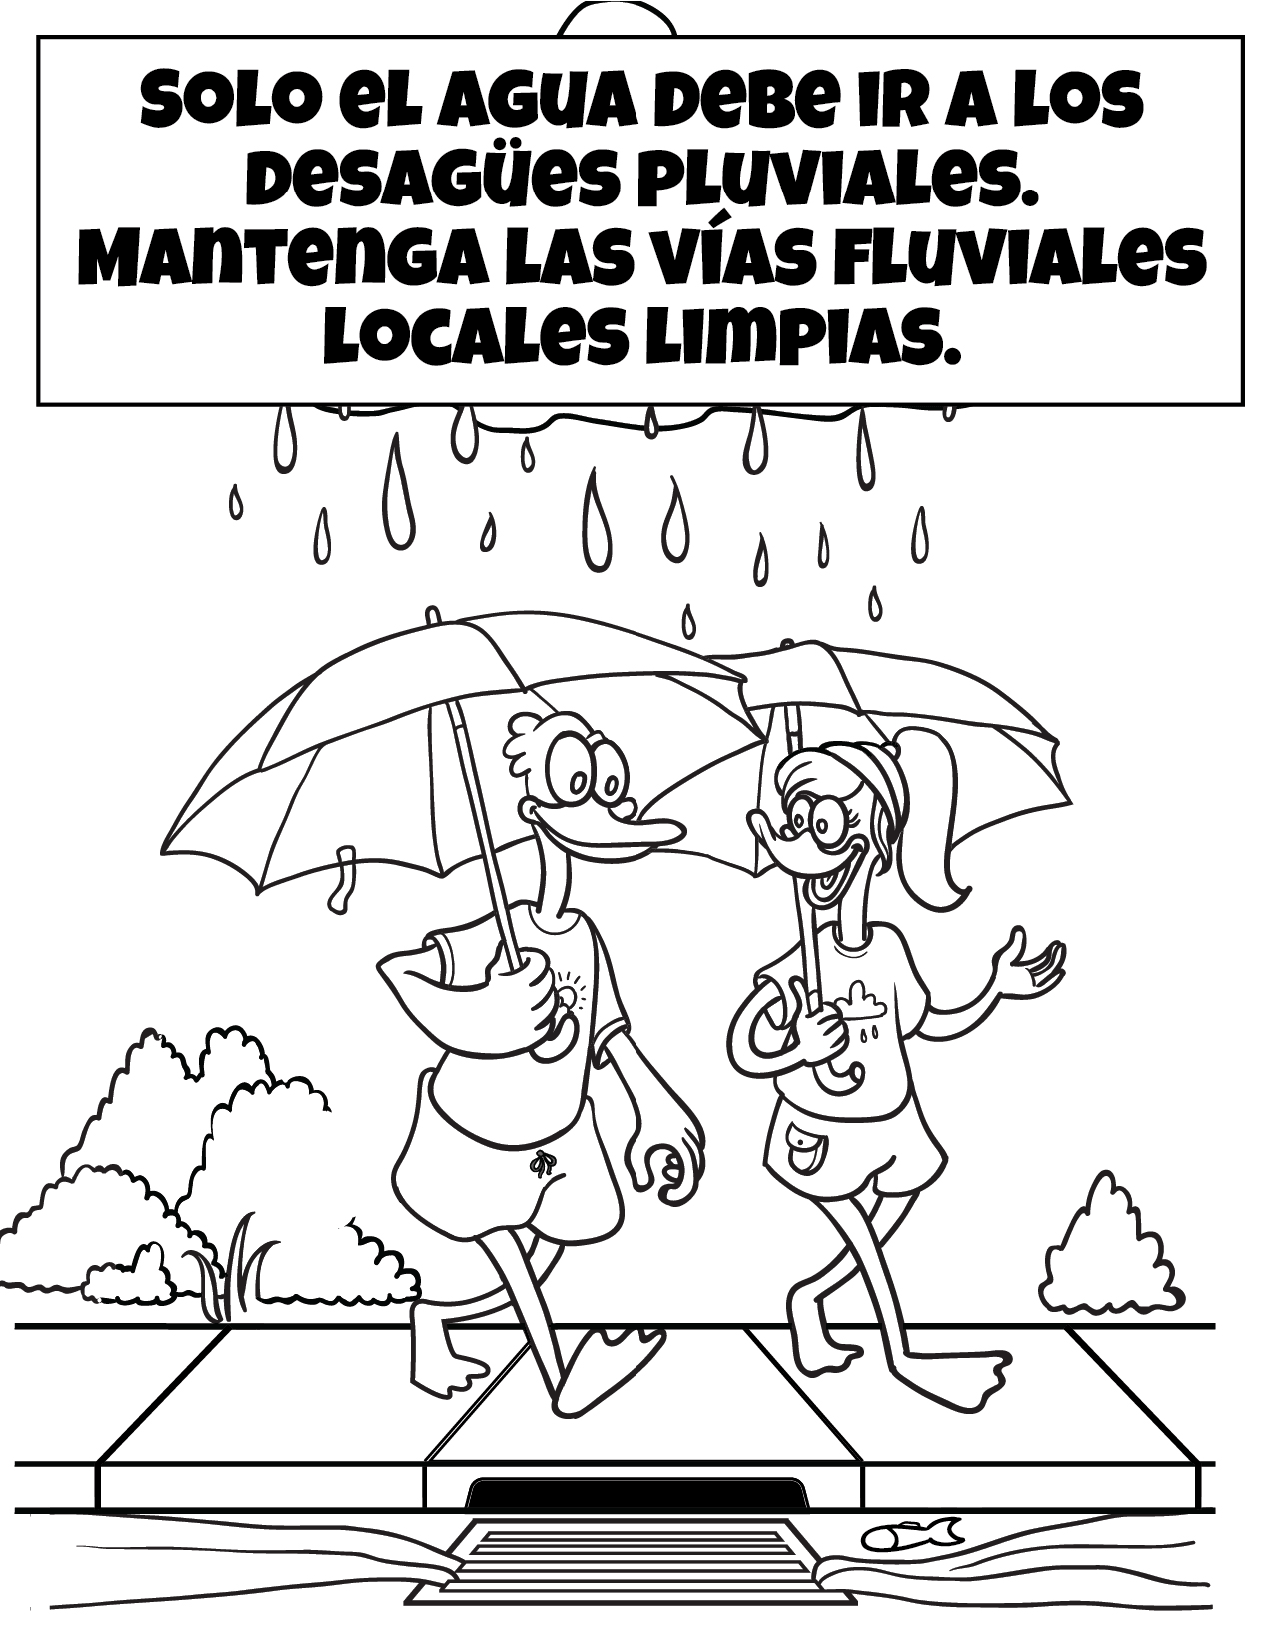 Only Rain Down the Storm Drain Coloring Sheet - Spanish